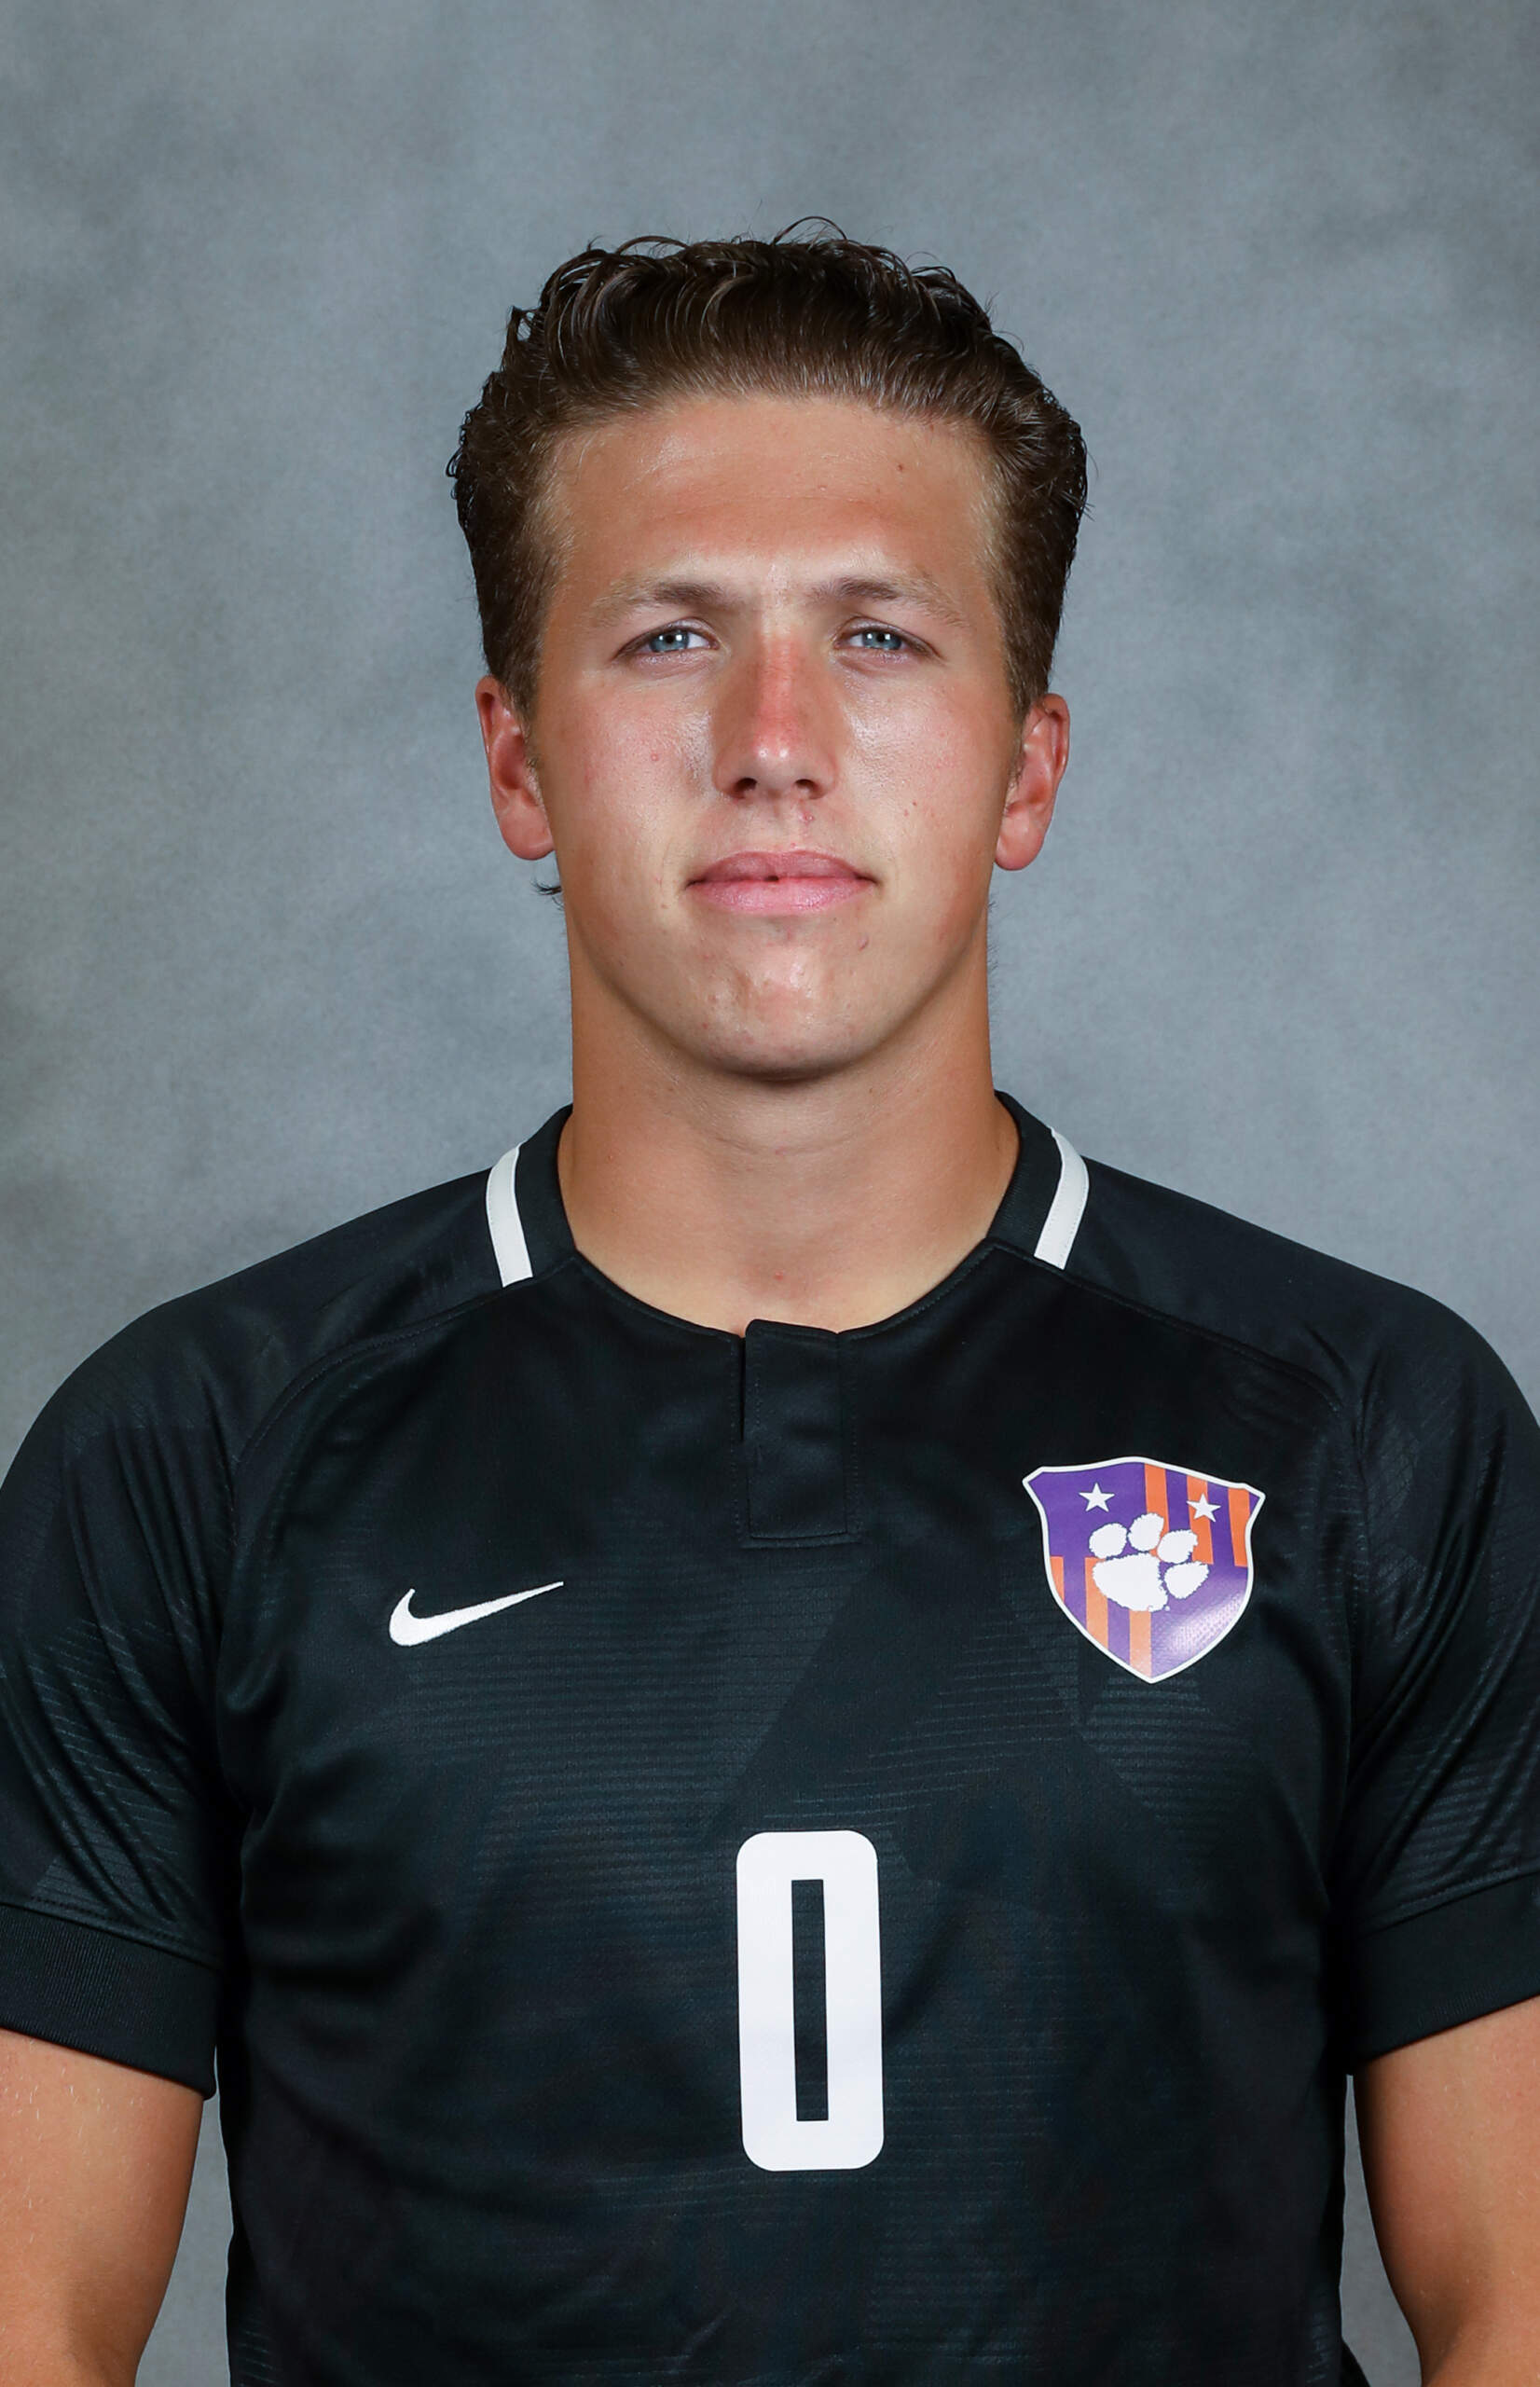 Max Fisher - Men's Soccer - Clemson University Athletics